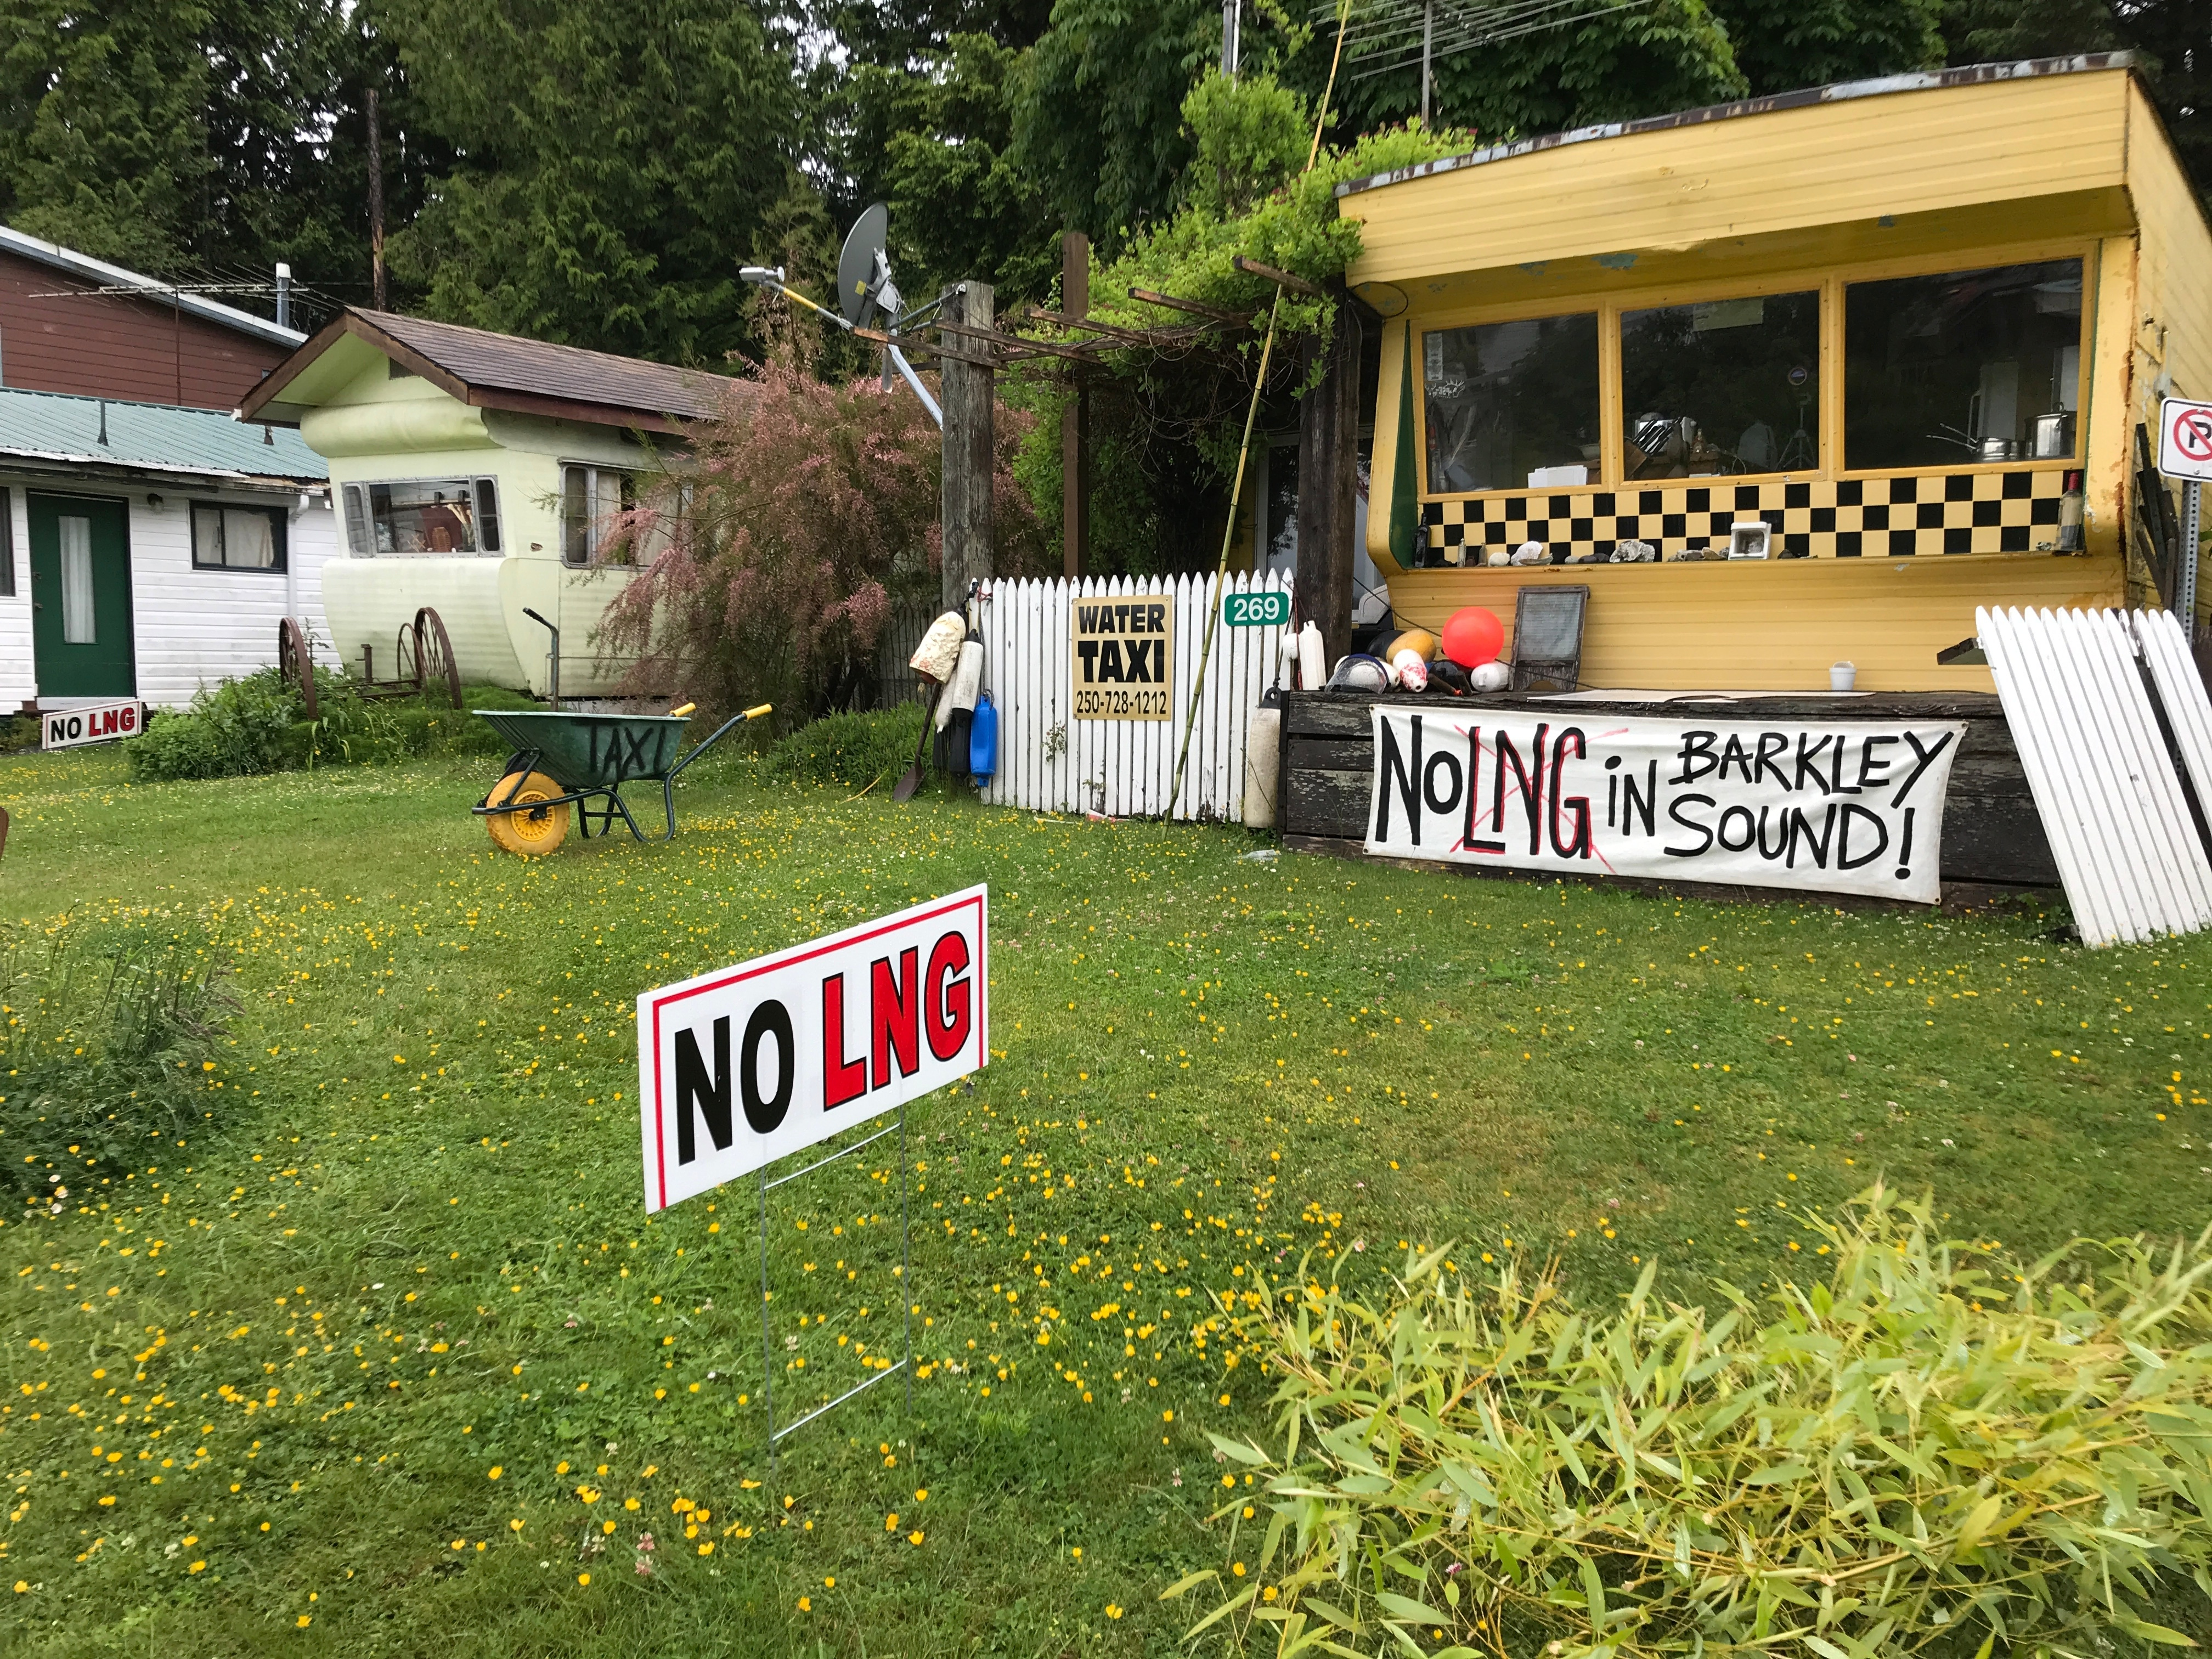 A proposal for a liquified natural gas facility near Bamfield has met with some resistance (Megan Thomas/CBC)